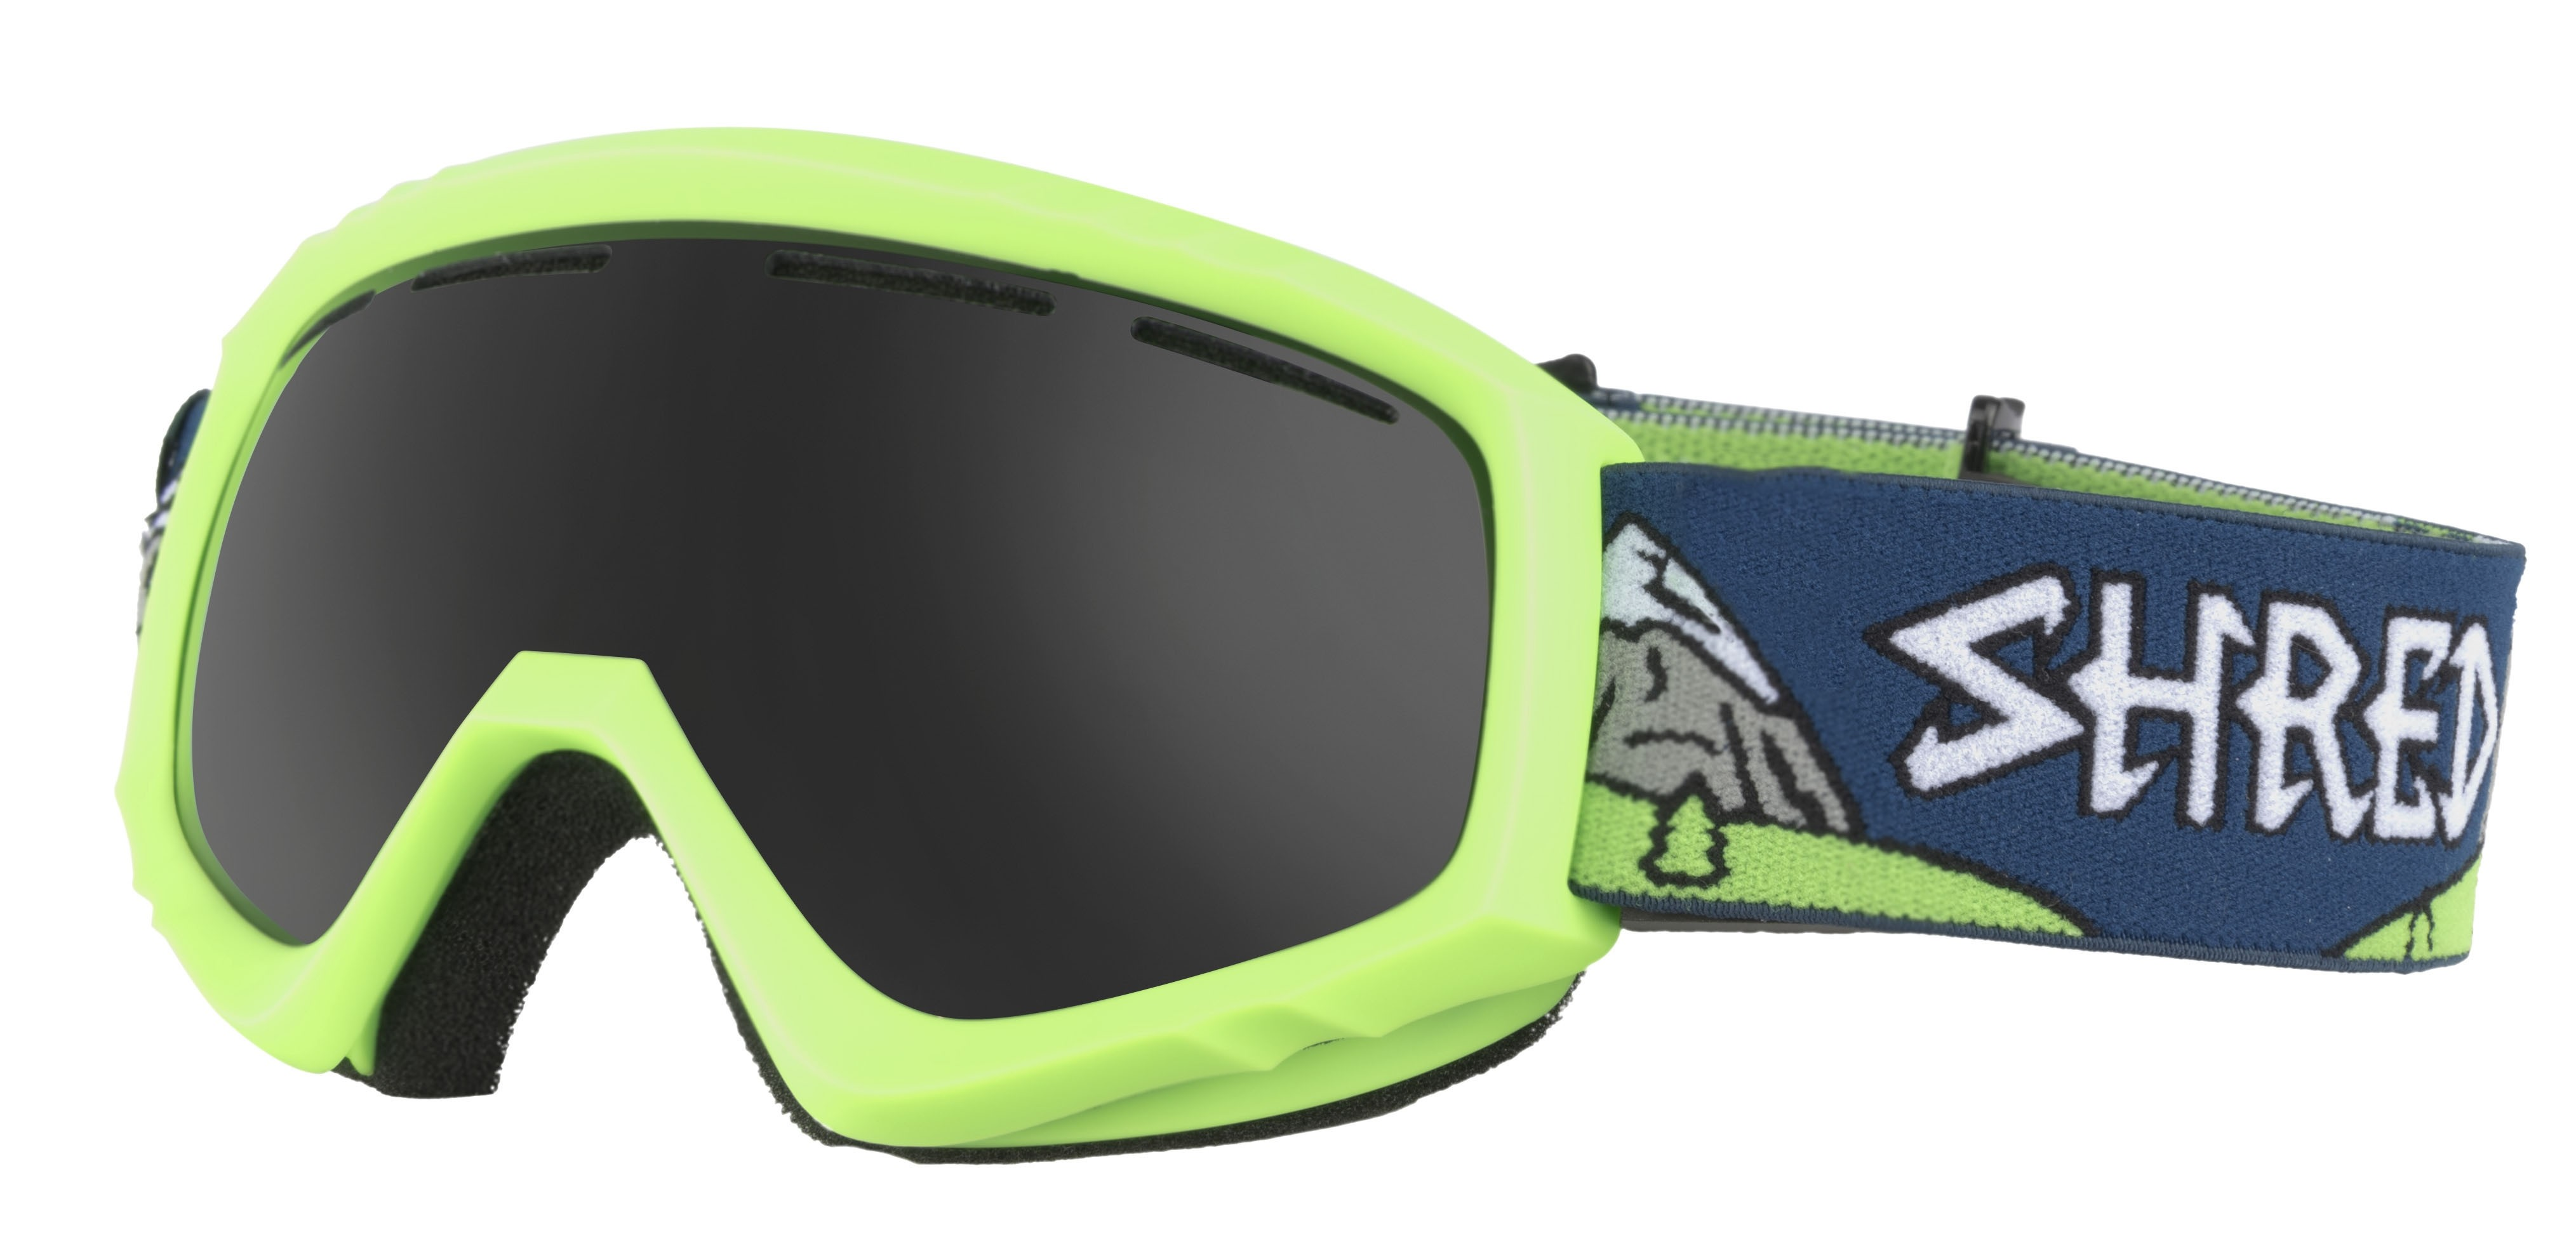 5e9ebdd119 Shred Mini junior ski goggles